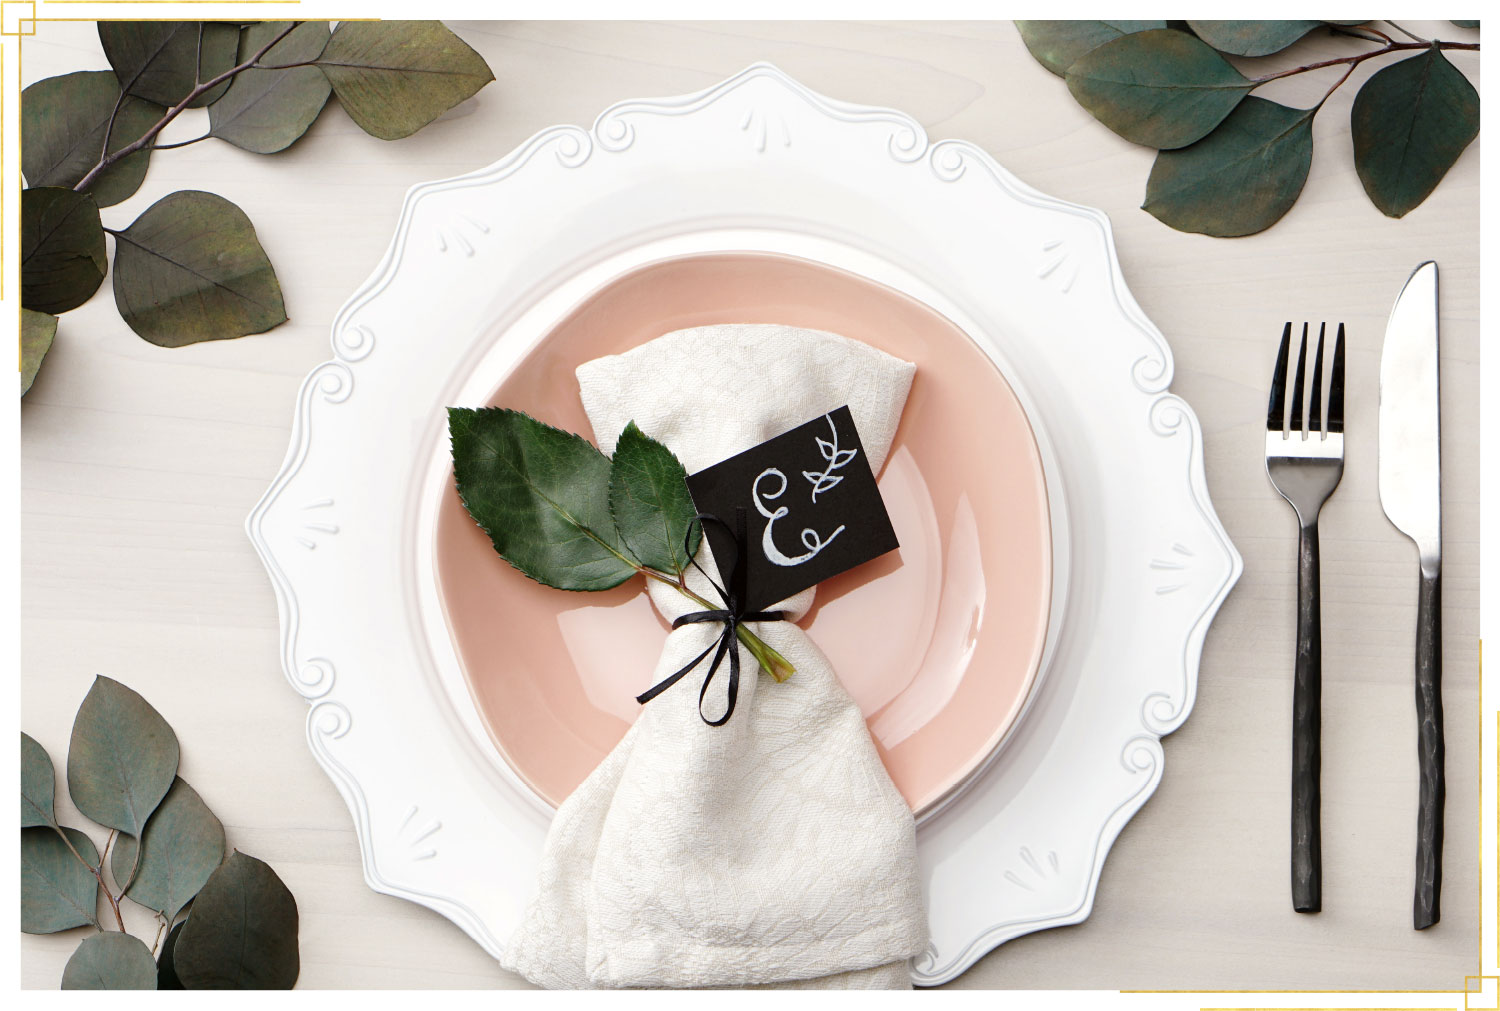 faux calligraphy table setting with white and pink plates